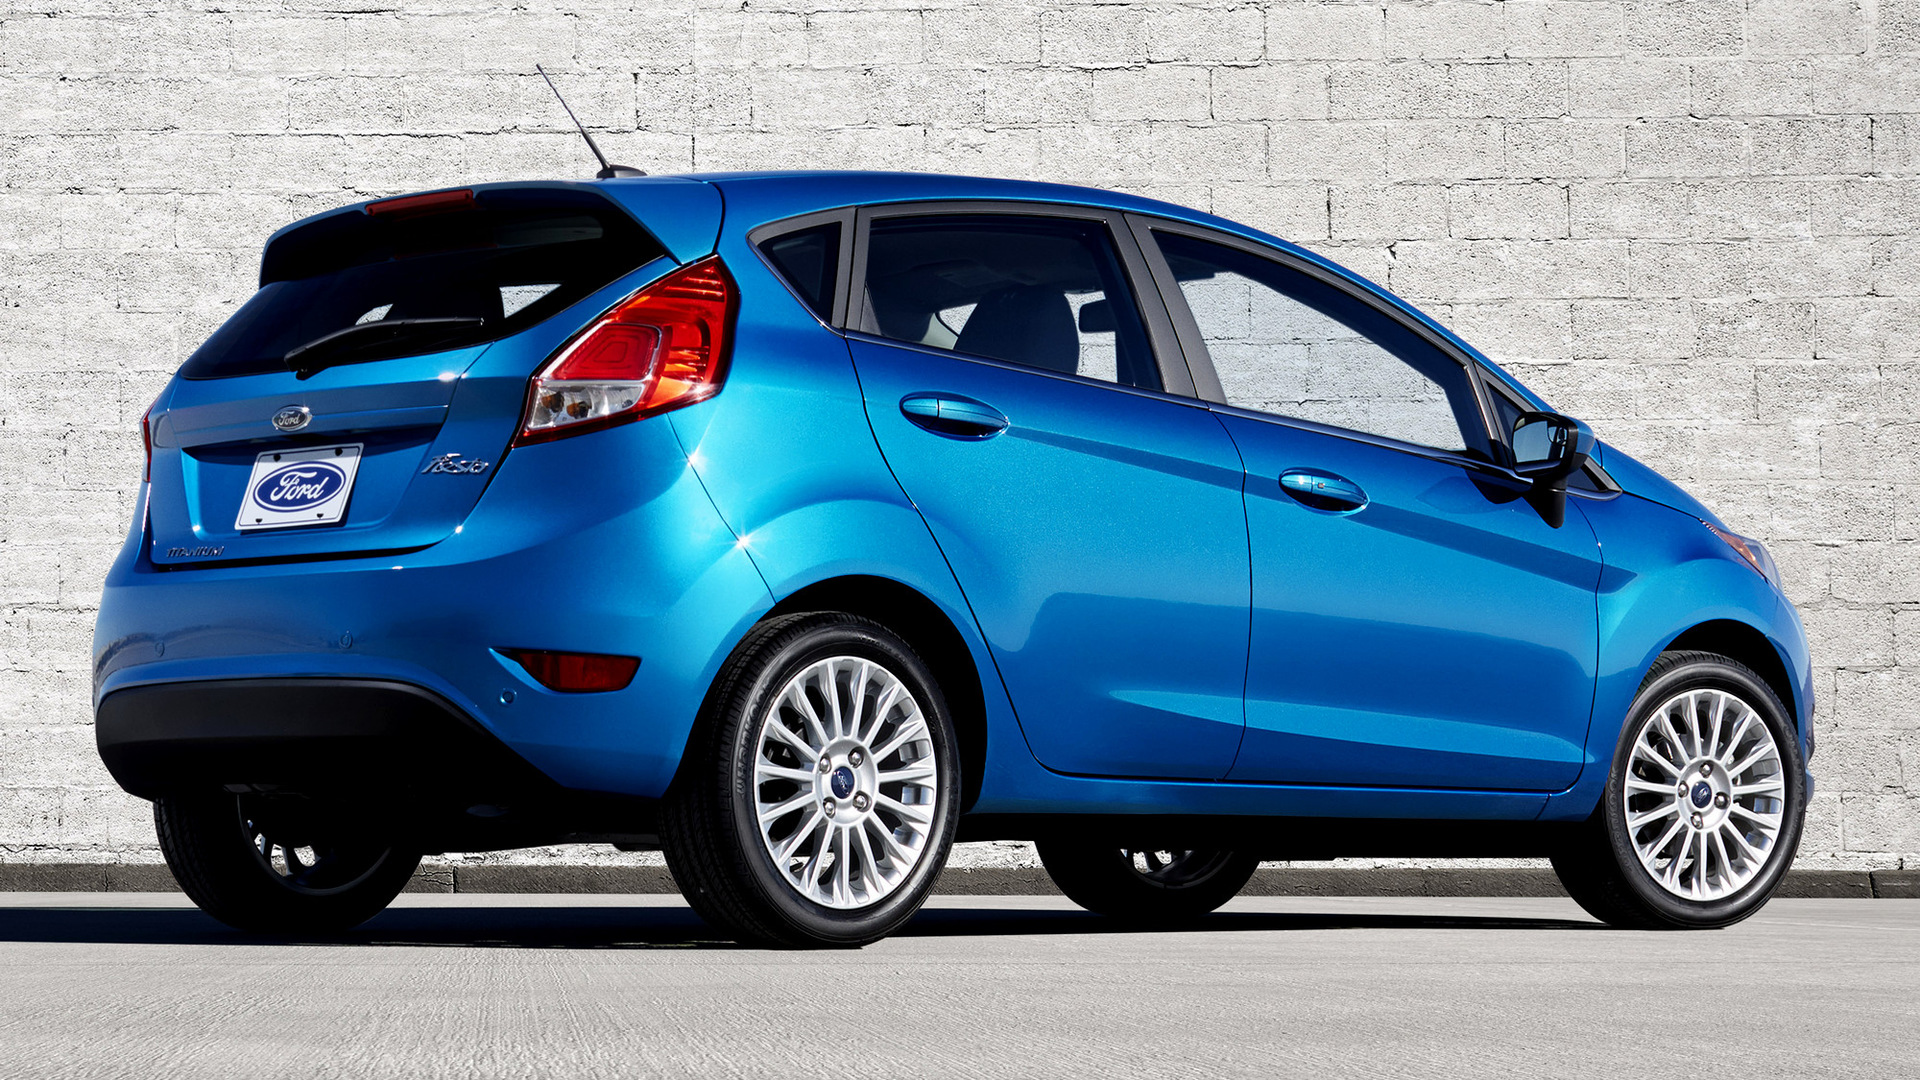 2014 Ford Fiesta Titanium Hatchback (US)